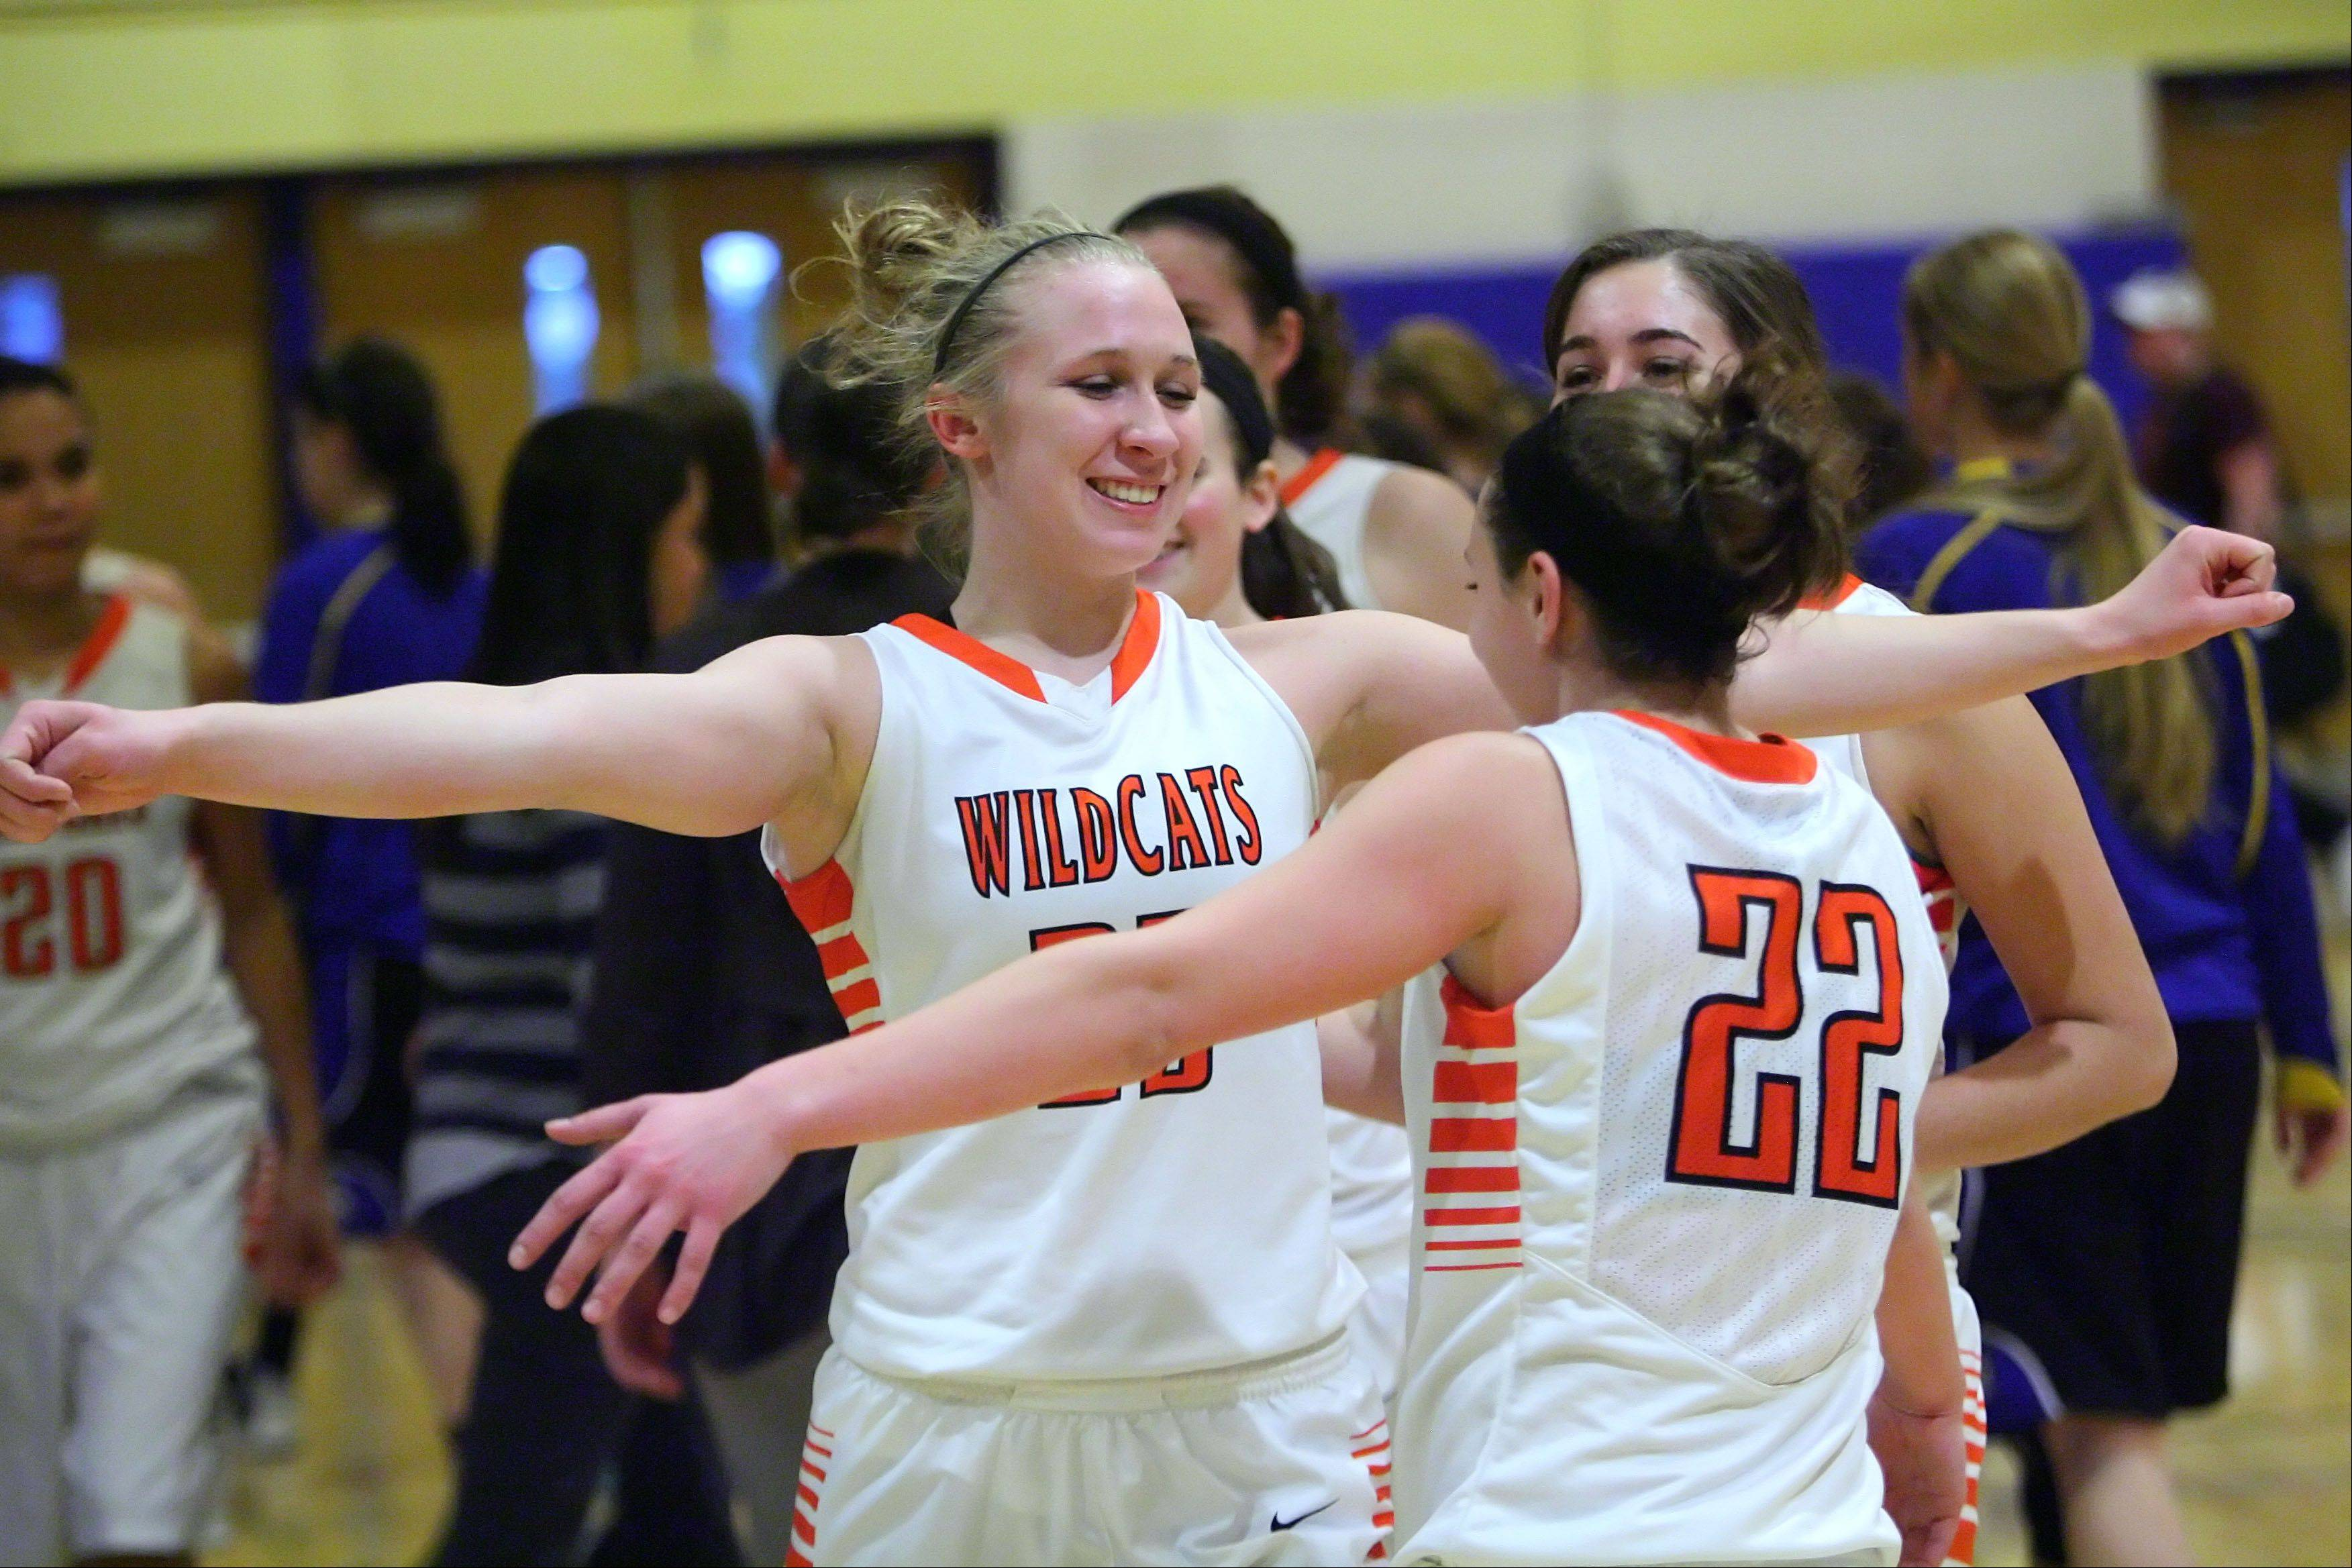 Libertyville's Dana Kym, left, and Olivia Mayer celebrate after beating Wheeling in a Class 4A regional play-in game Monday night at Wheeling.